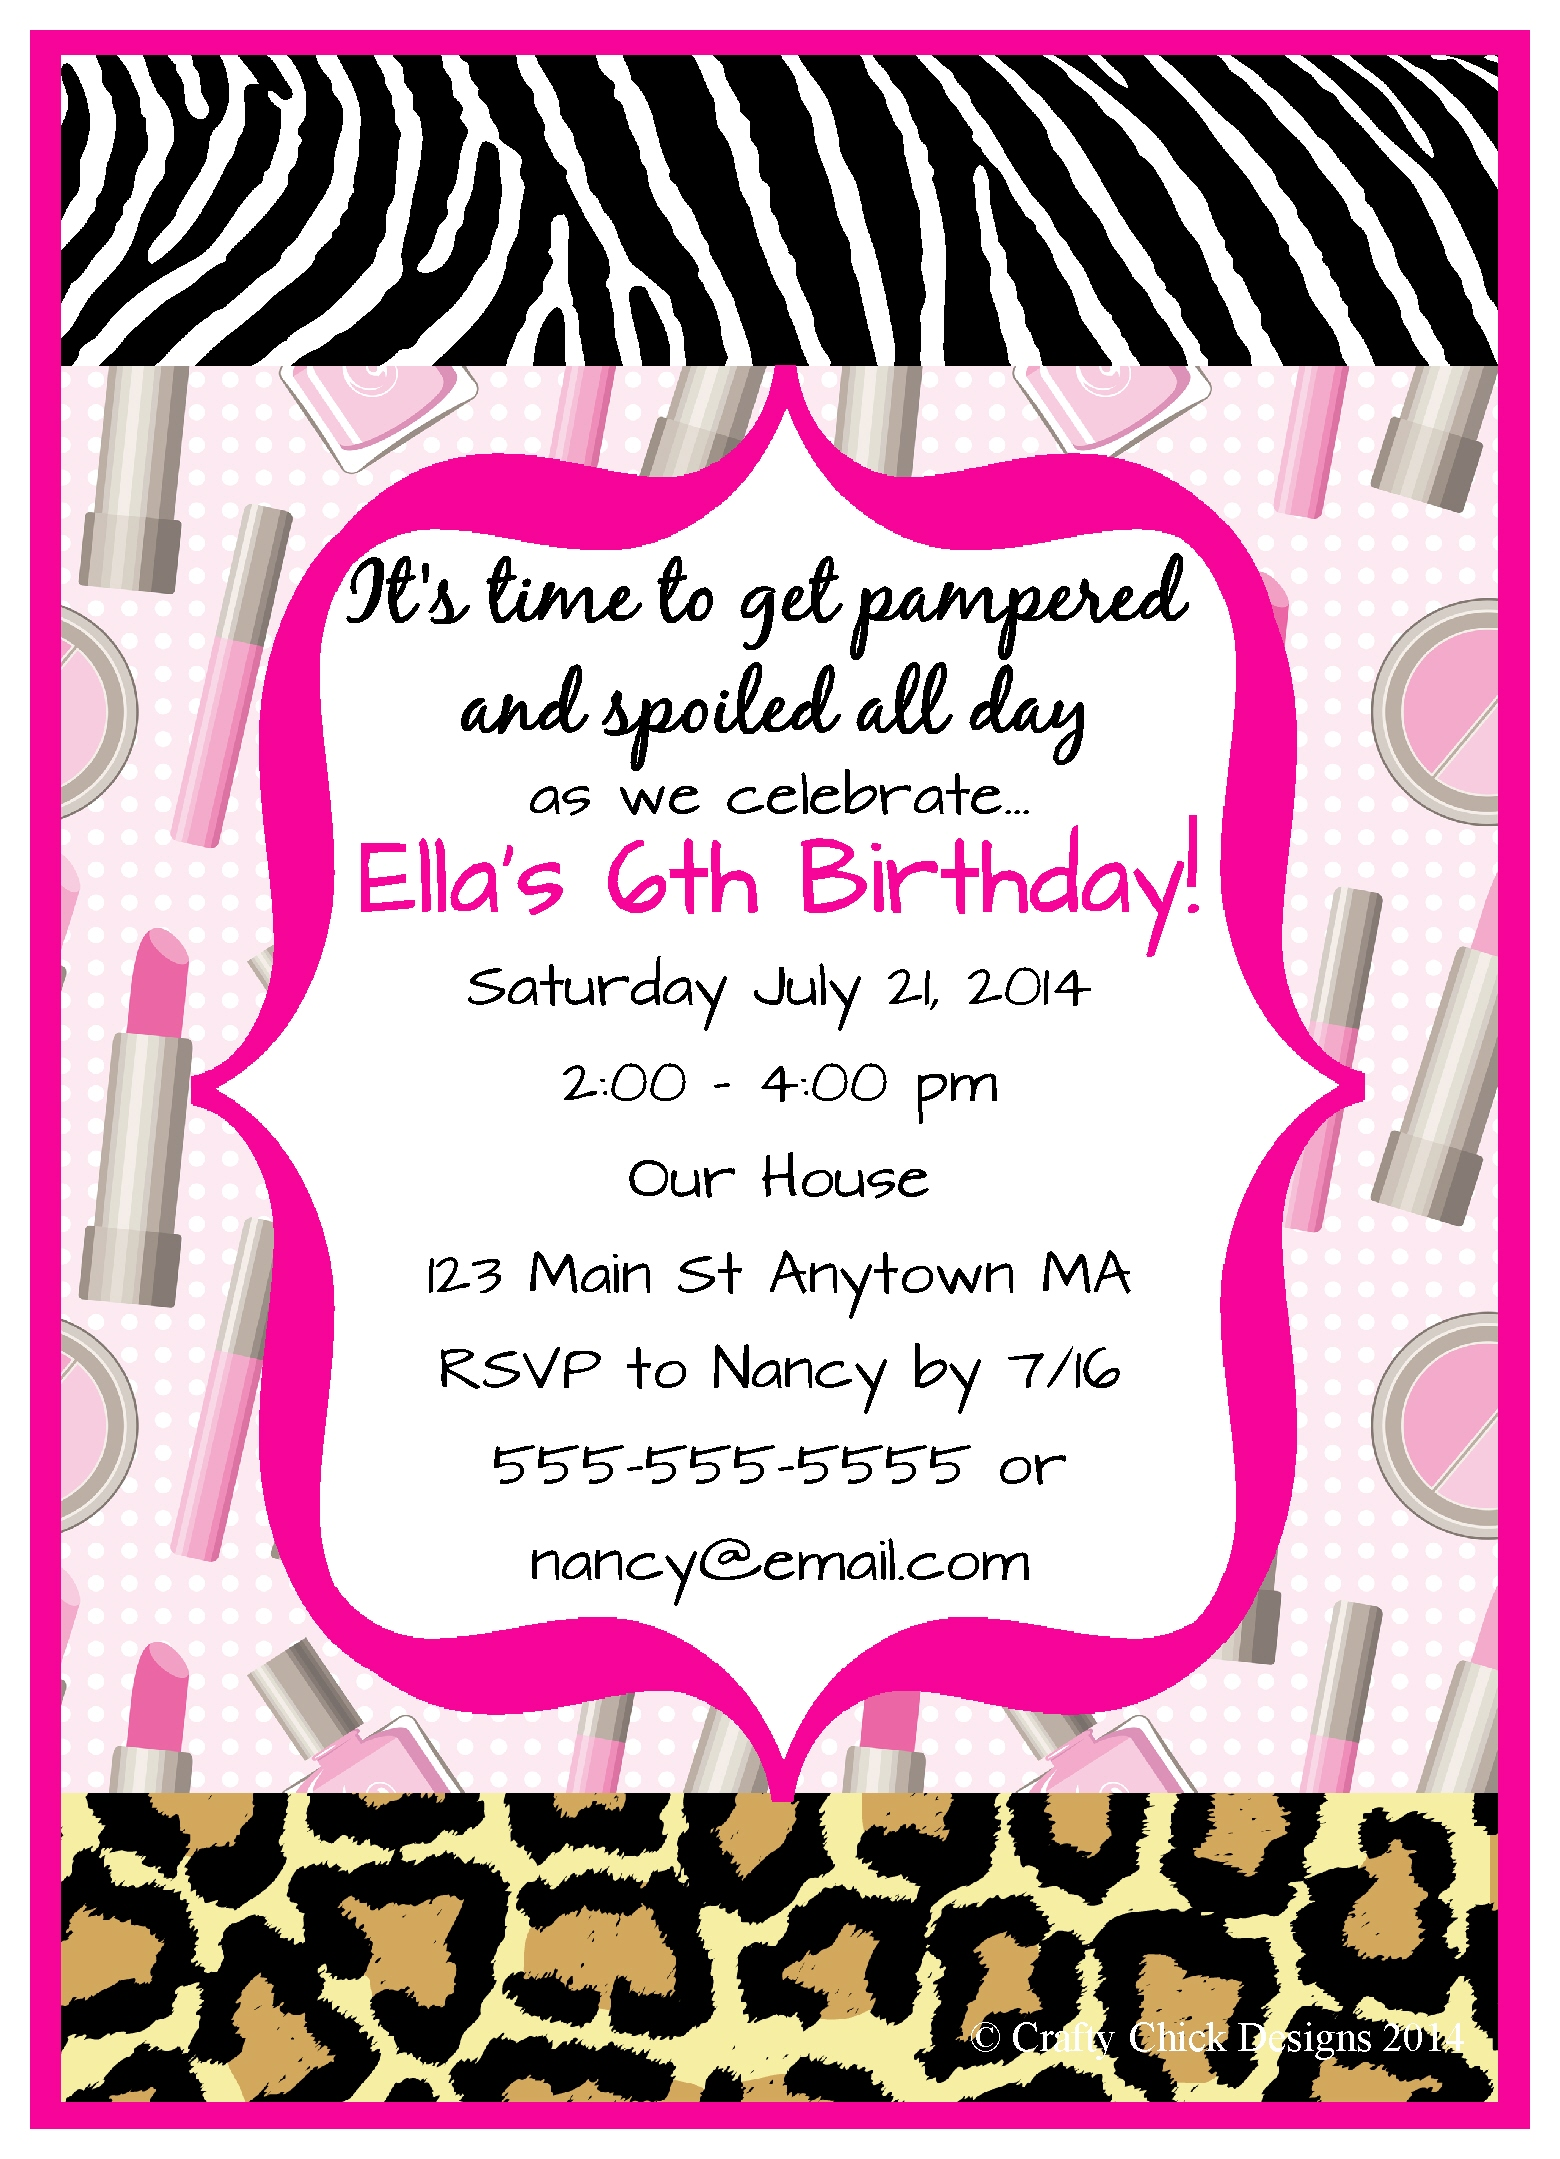 13th birthday party invitations printable ; 13Th-Birthday-Invitations-Printable-and-get-inspired-to-create-your-own-birthday-Invitation-design-with-this-ideas-13